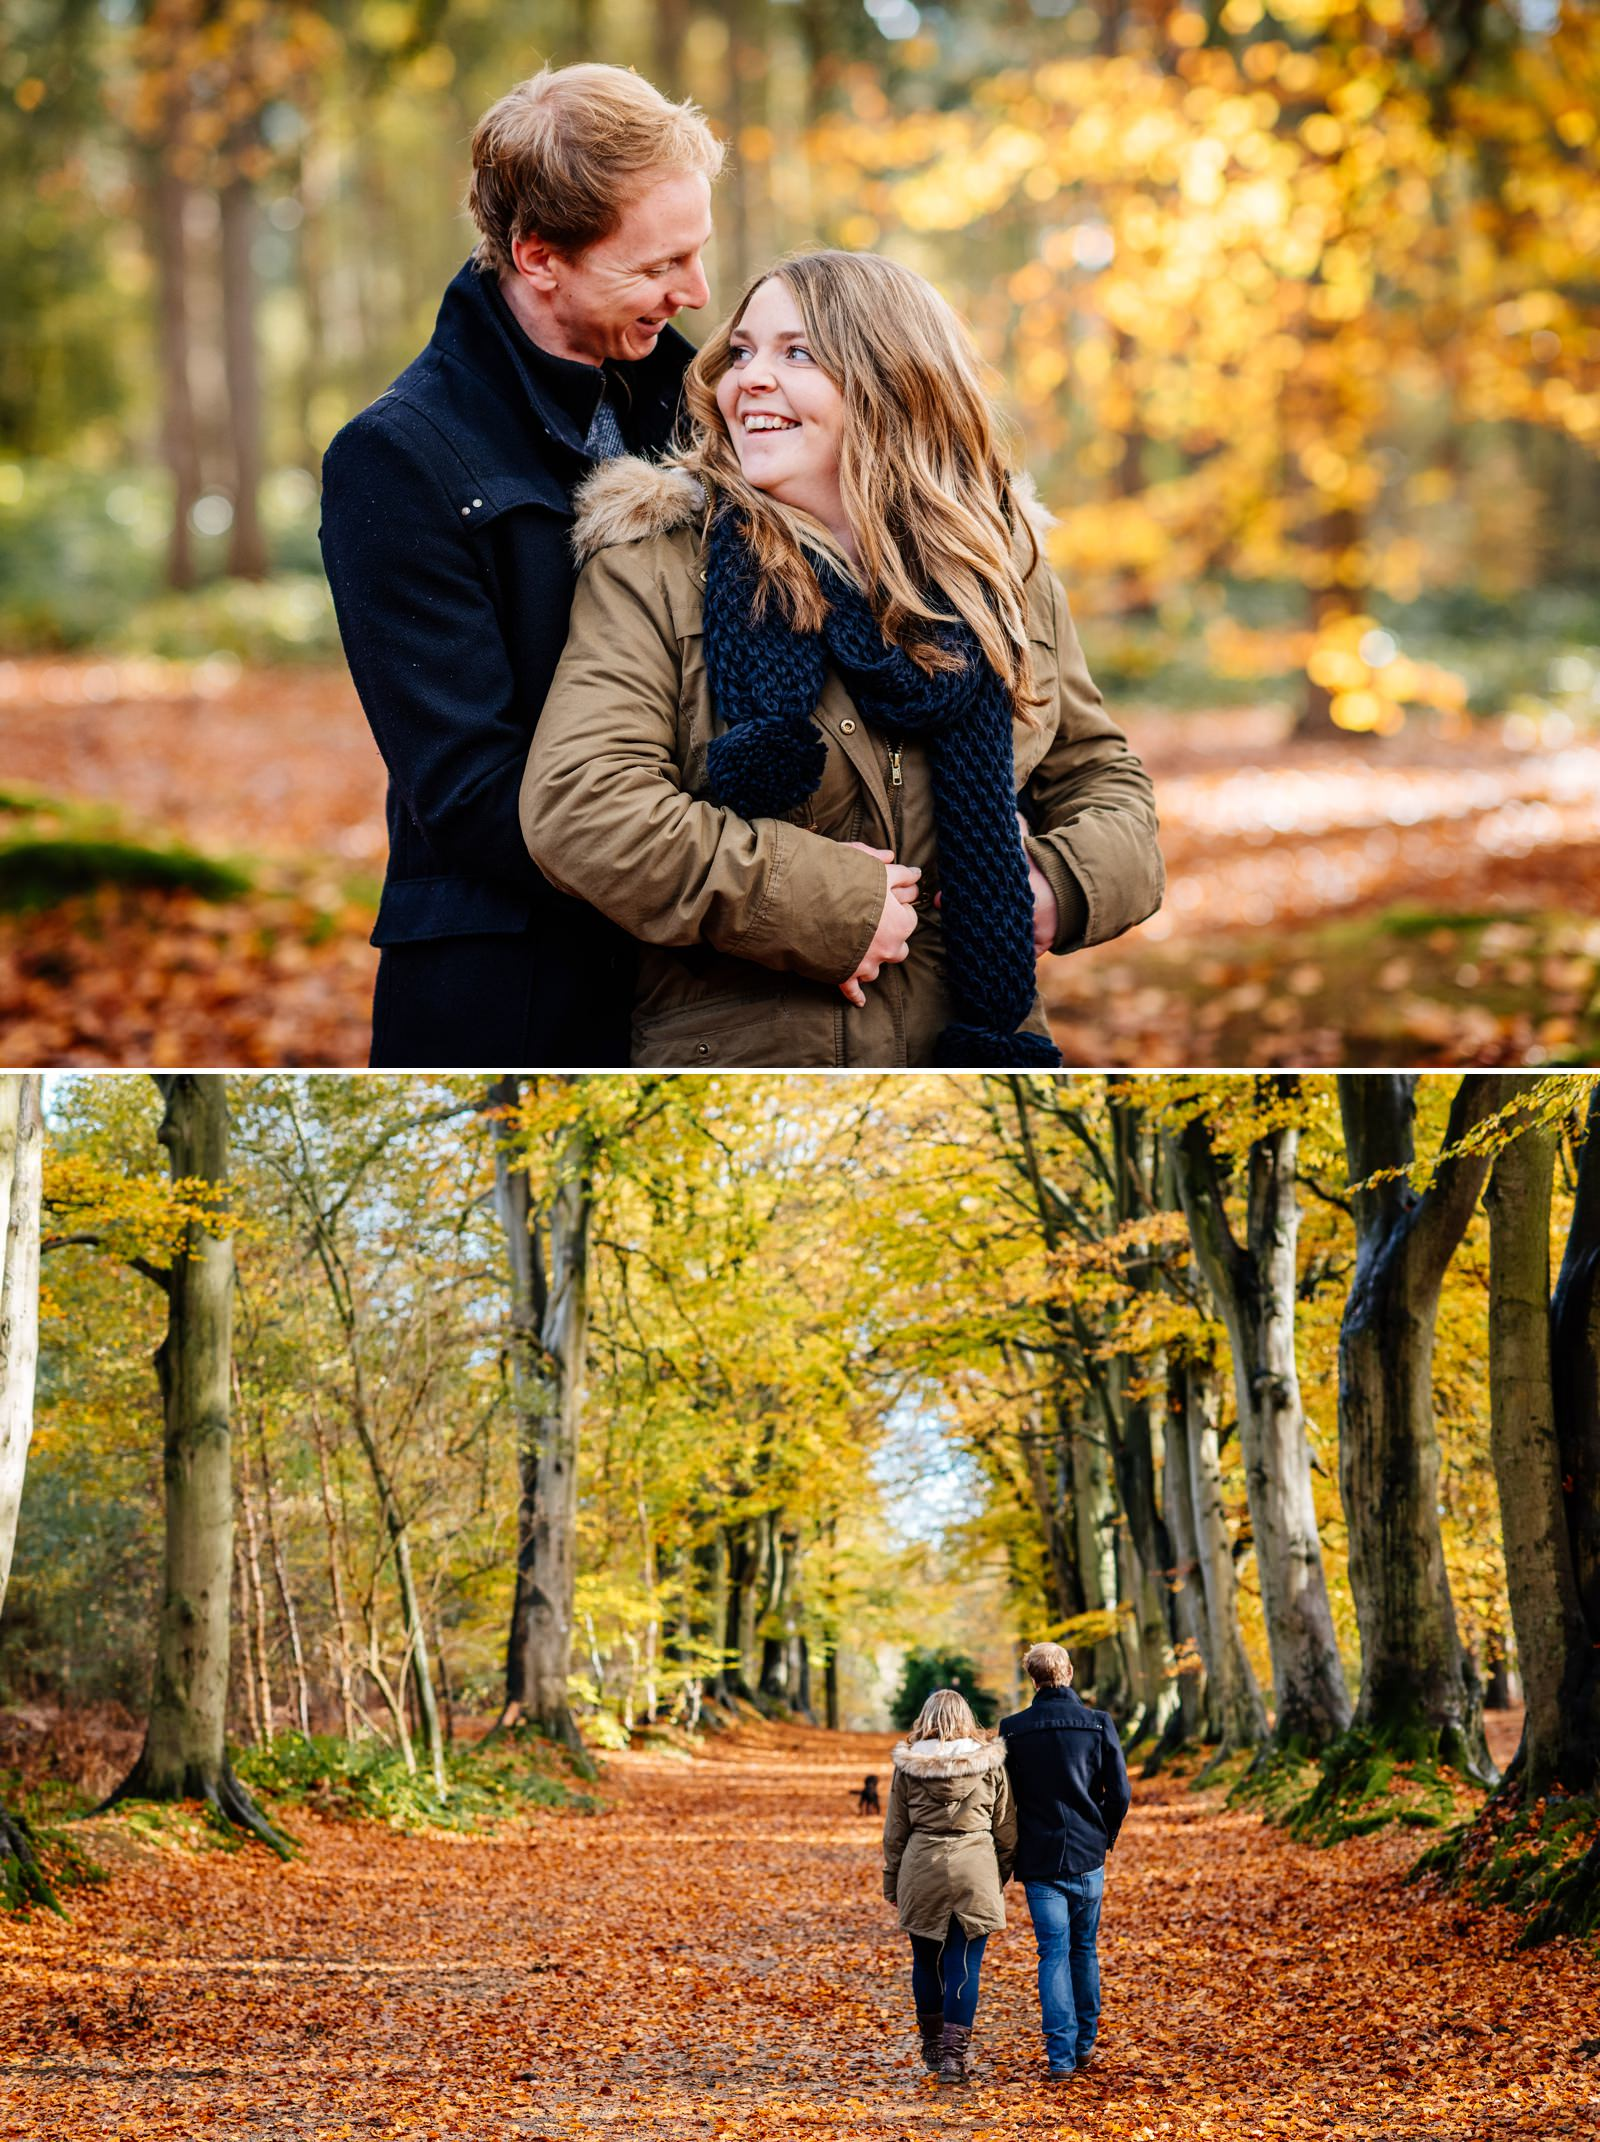 Nicola & Dan - Harlestone Firs Pre-Wedding Shoot_0006